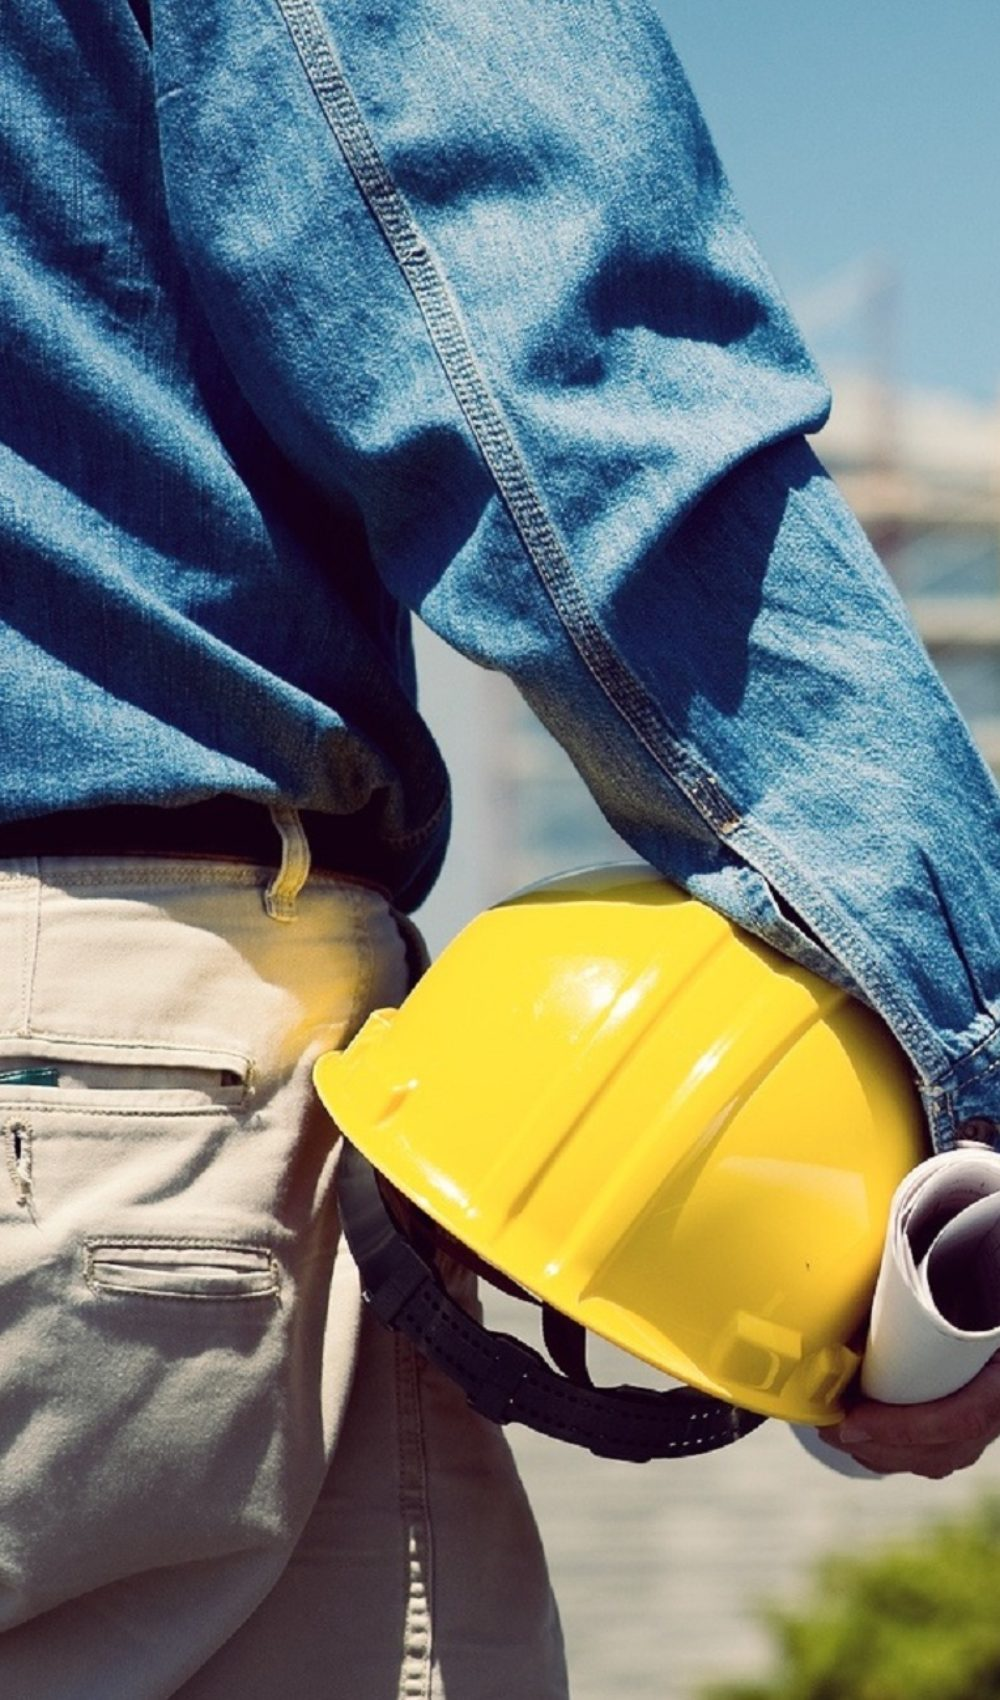 A construction worker or foreman at a construction site observing the progress of construction job or project, with copy space